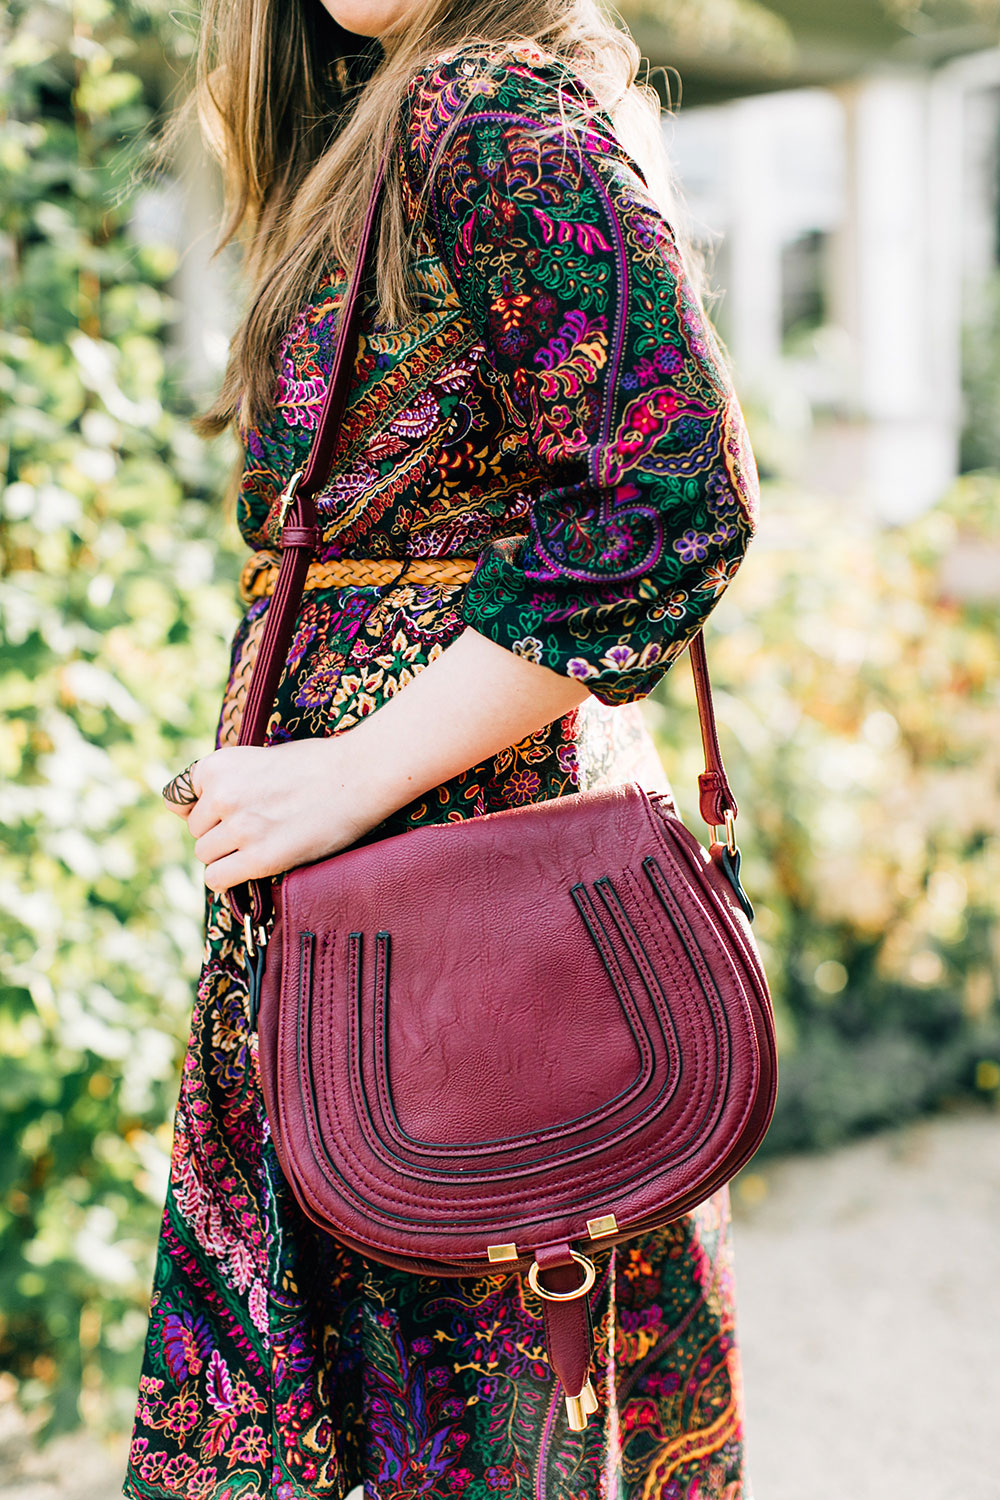 70s Paisley Dress & Bag Similar to Chloe Marcie Satchel // hellorigby seattle fashion blog